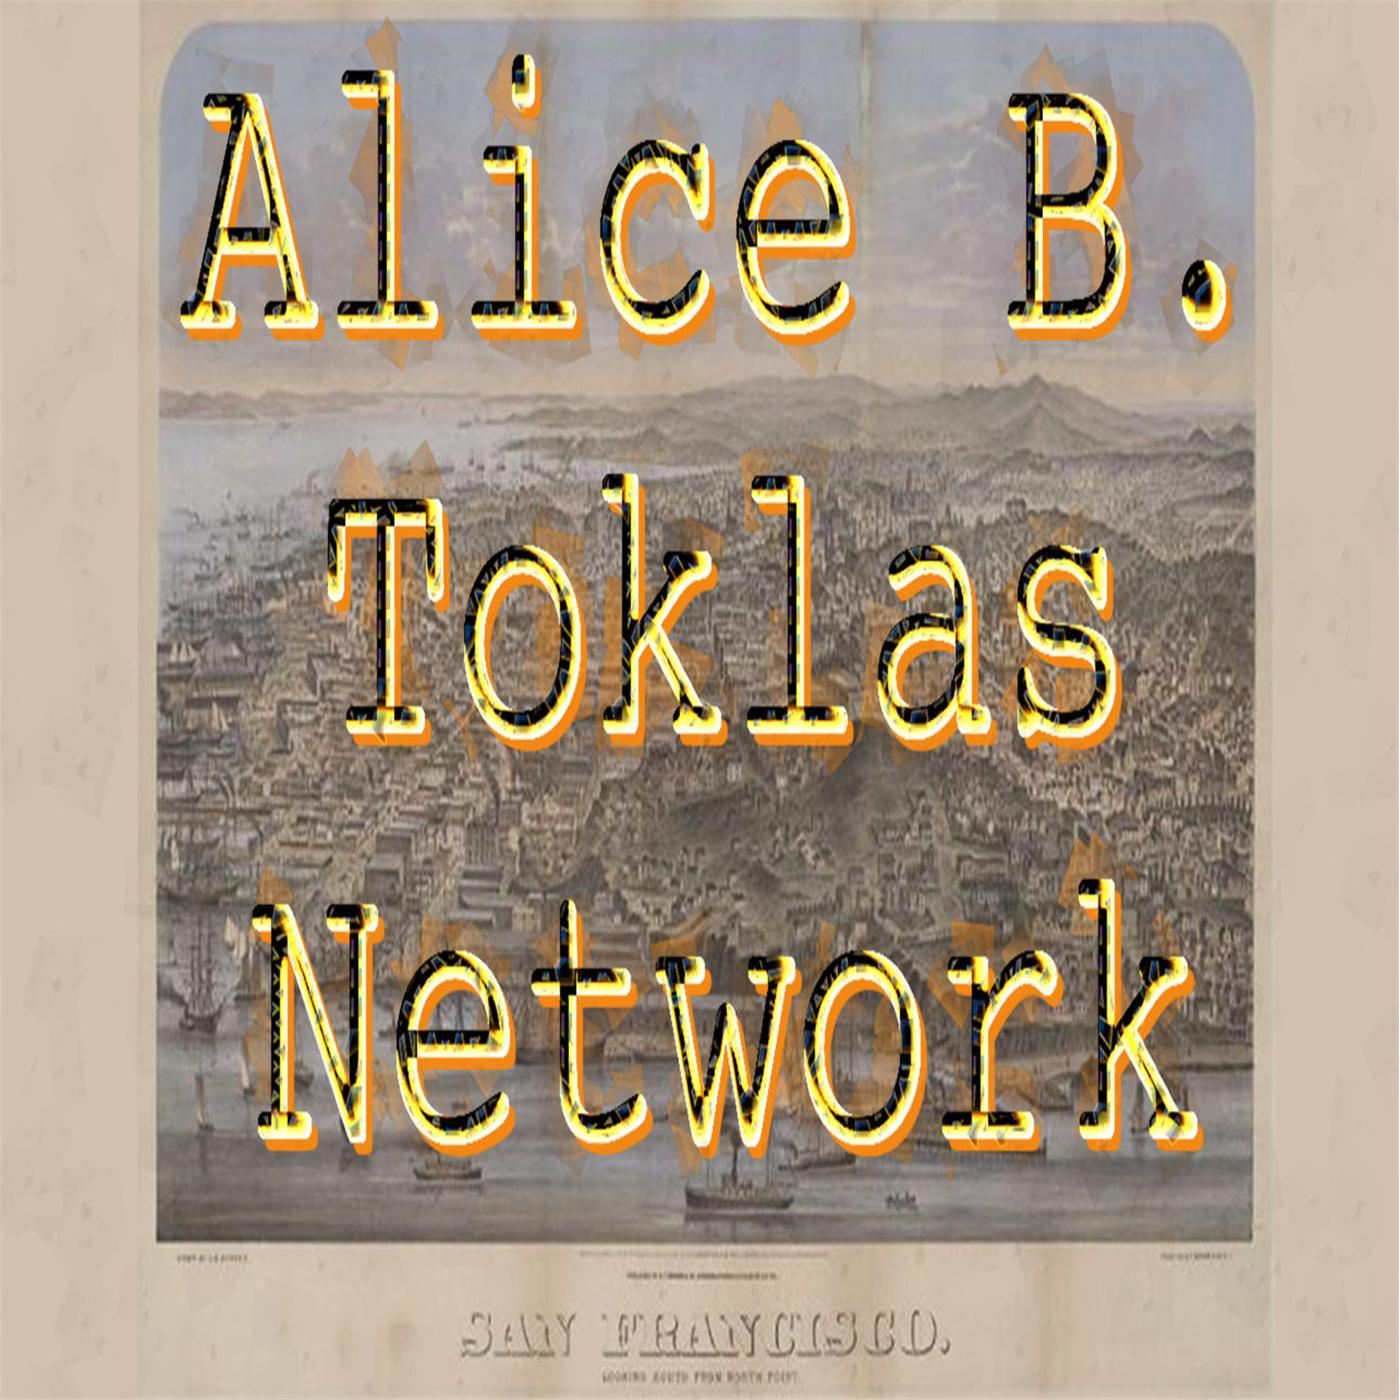 Alice B. Toklas Network : Radio